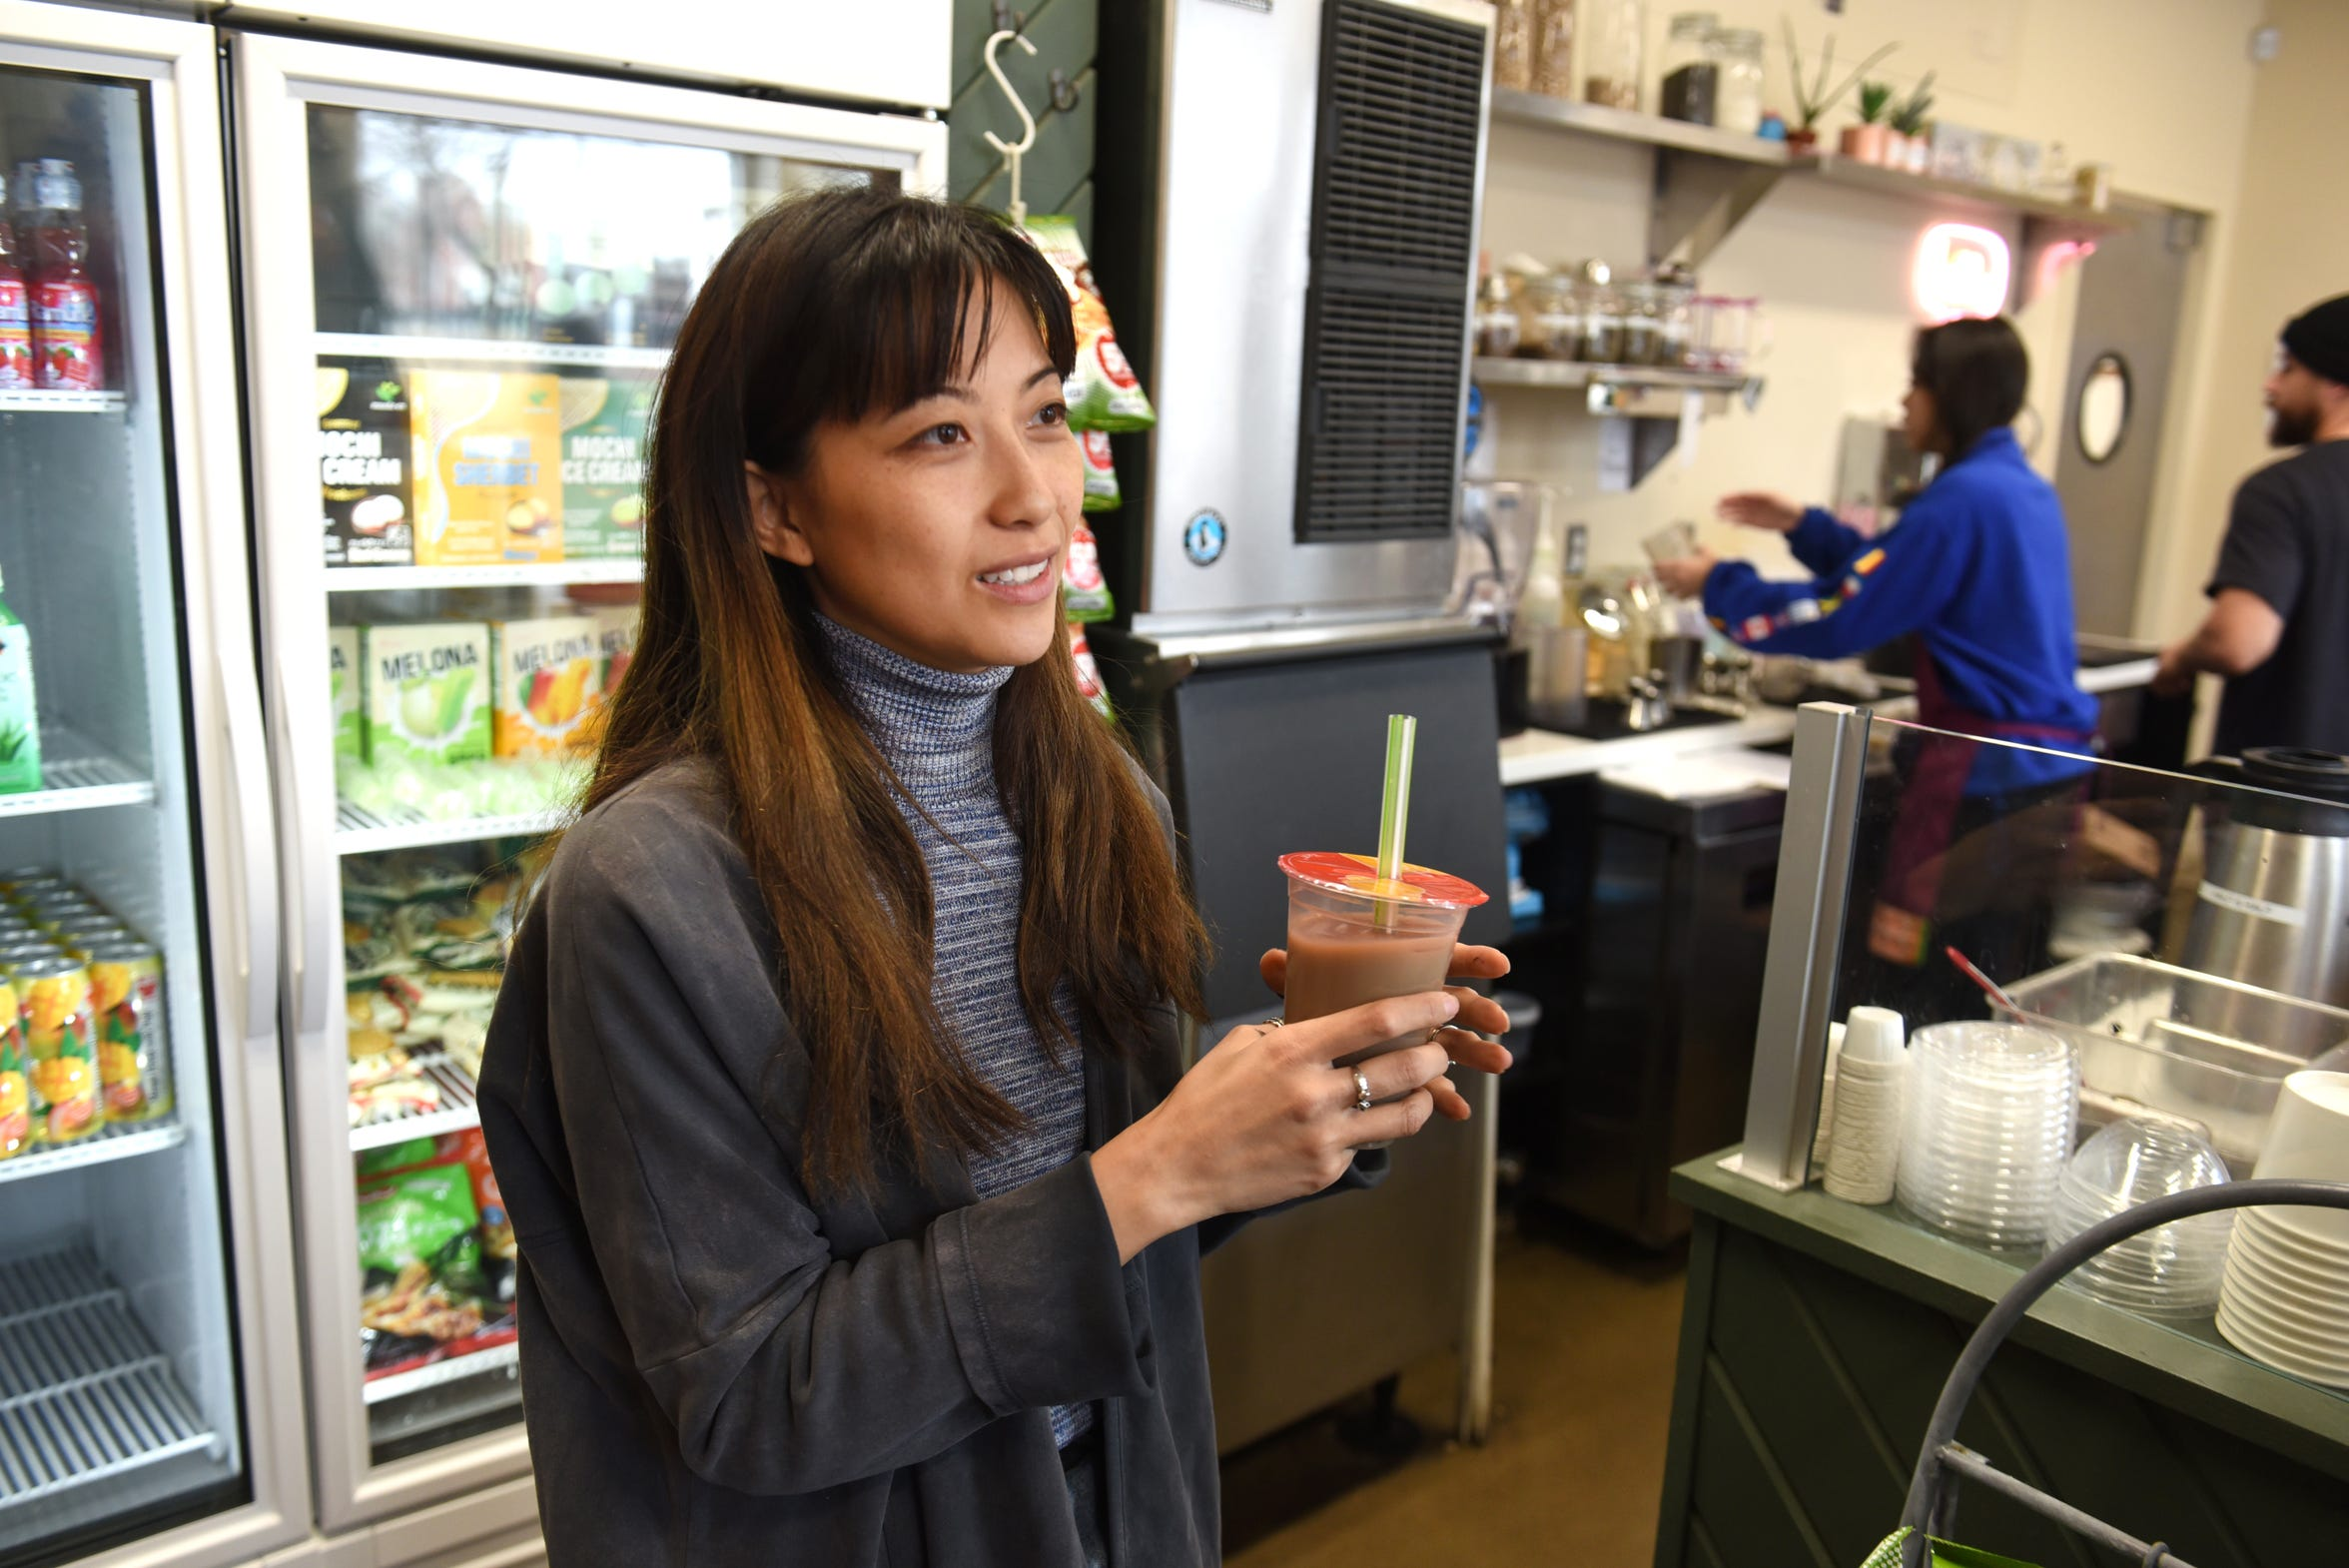 Gowhnou Lee, co-owner of Tou & Mai, speaks of the Lunar New Year and the new business that she and her husband Cedric opened in Detroit's midtown.